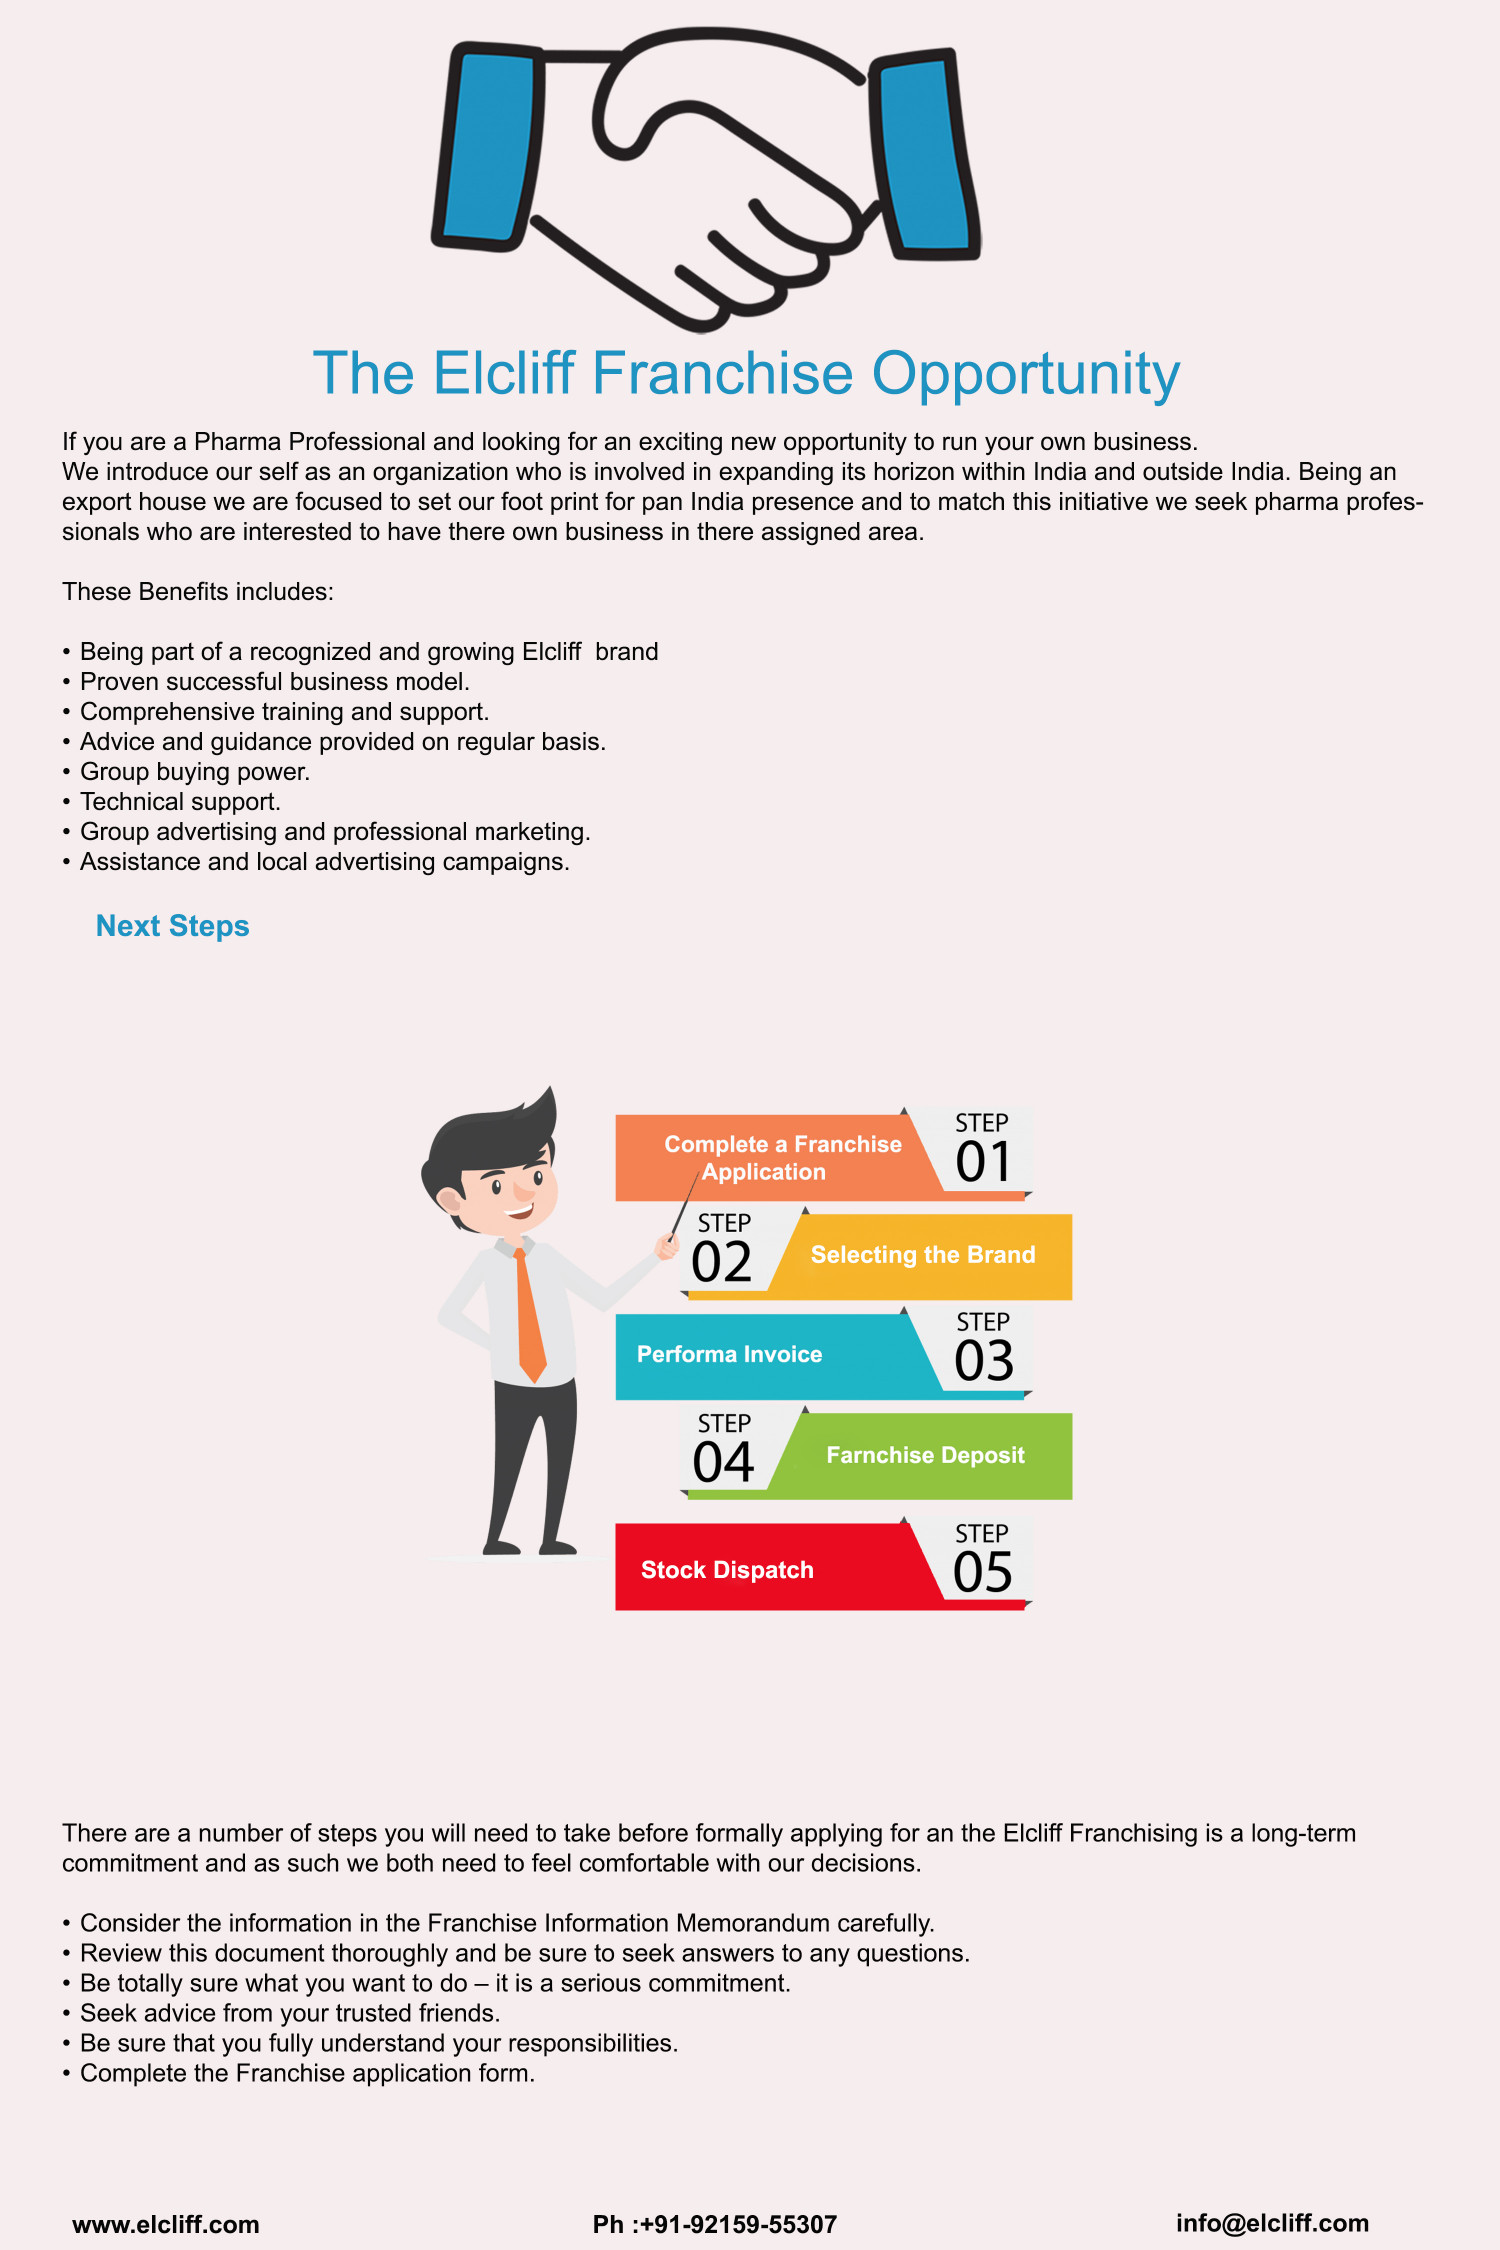 The Elcliff Pharma PCD Franchise Opportunity Infographic